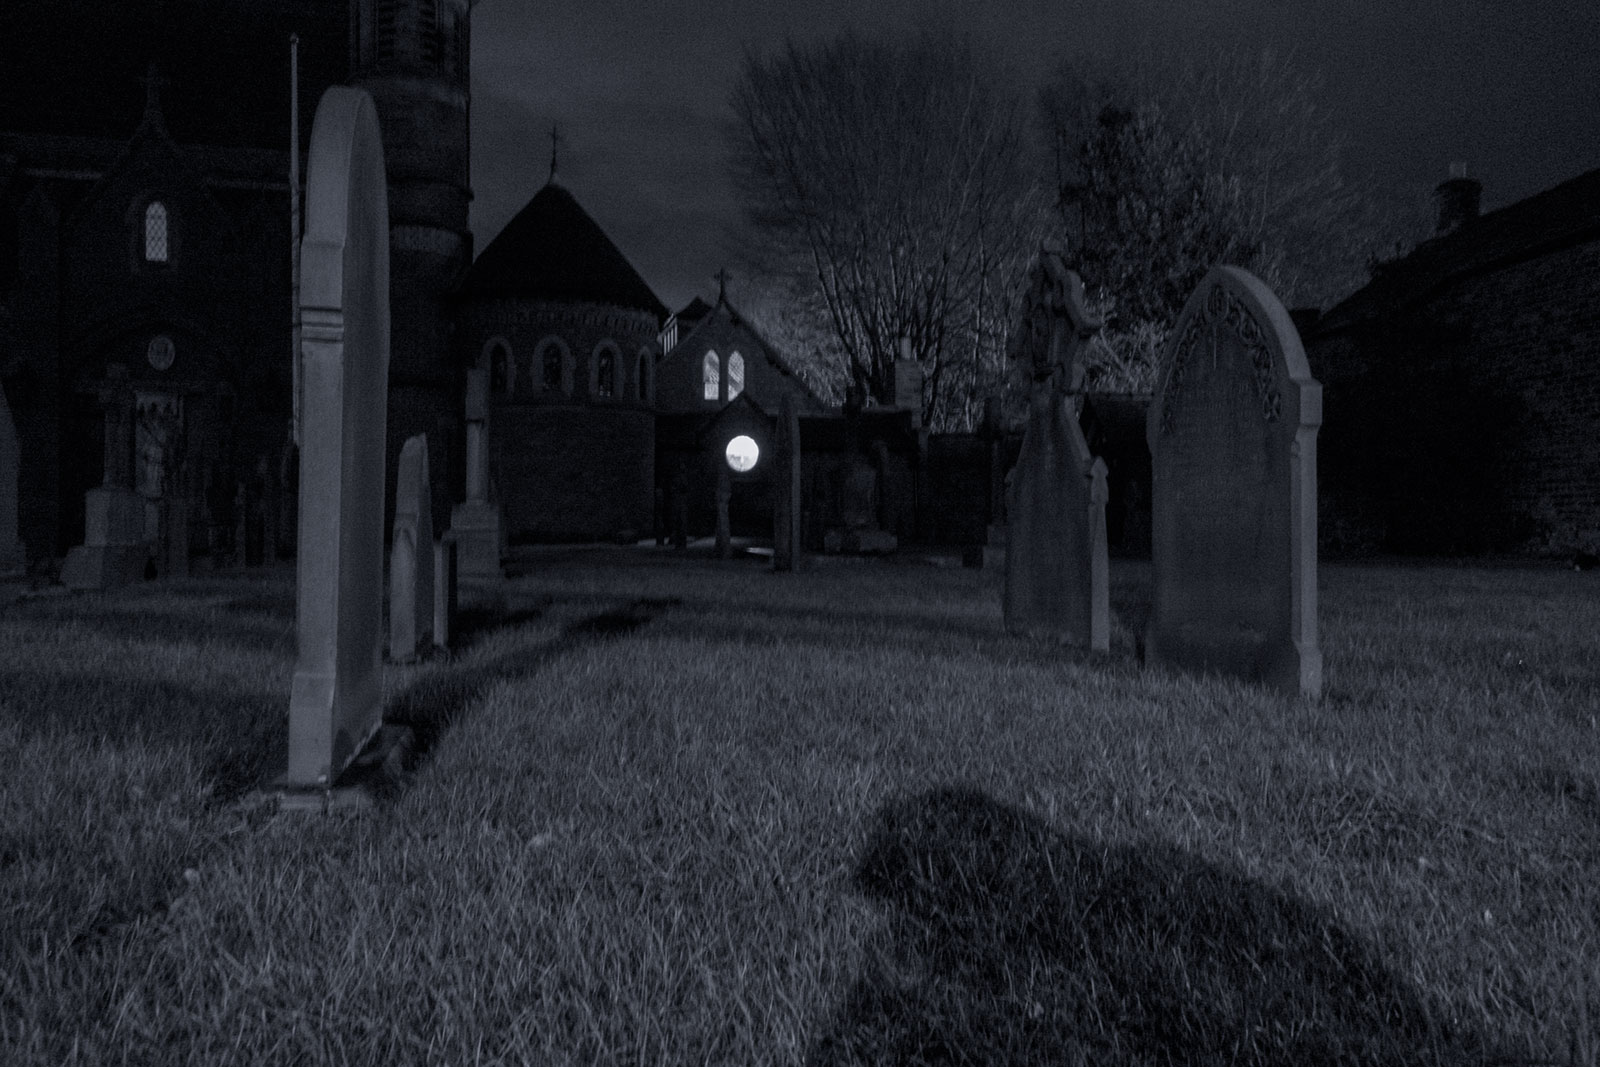 The nature of ghosts in terms of science